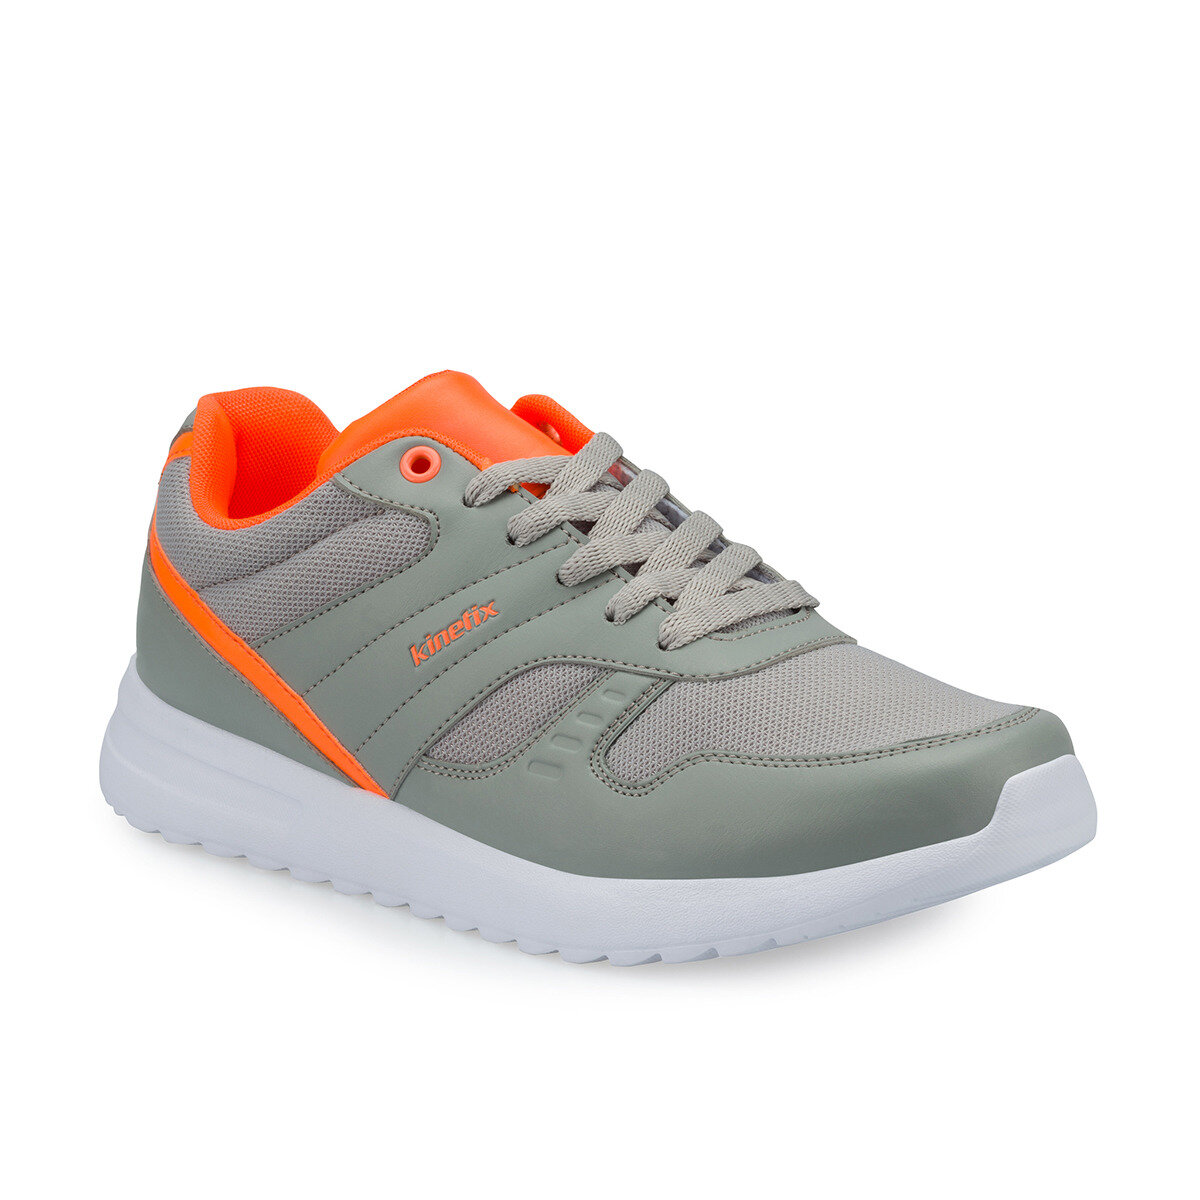 FLO RANDI MESH M Gray Men 'S Sneaker Shoes KINETIX